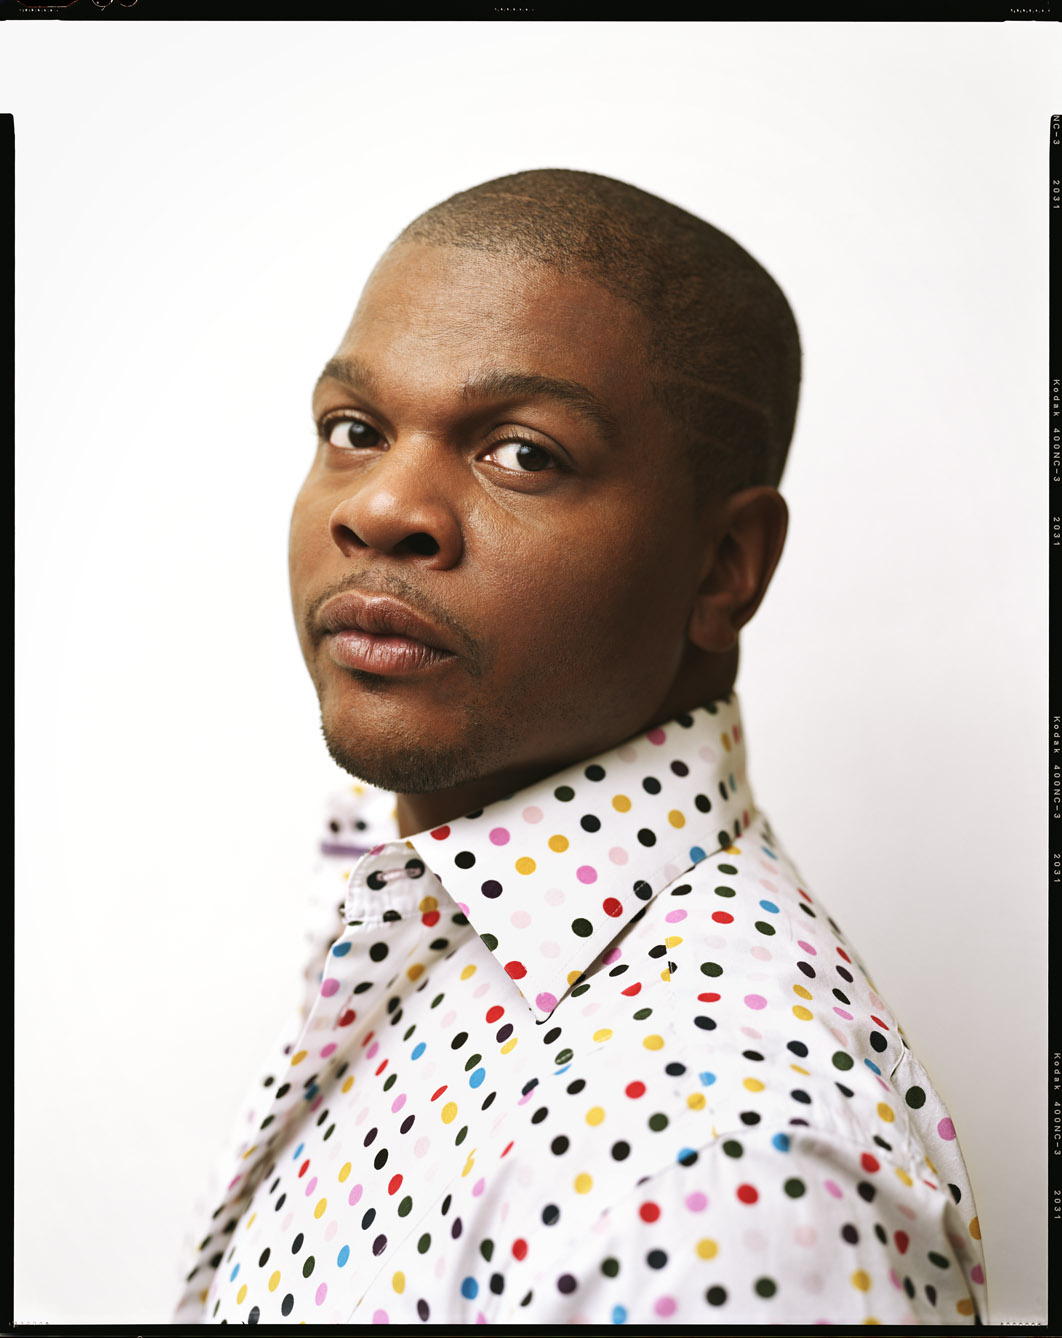 Kehinde_Wiley_Headshot_-_Kwaku_Alston.jpg